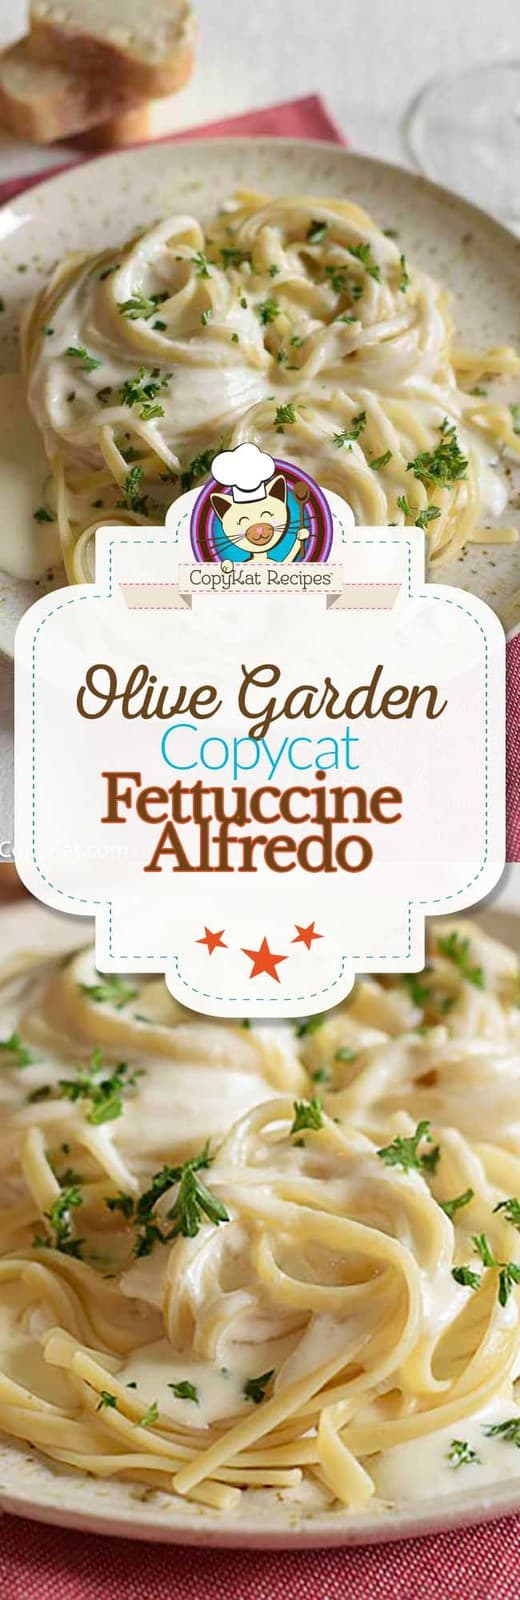 You can make a copycat recipe for the Olive Garden Fettuccine Alfredo at home with this easy copycat recipe.